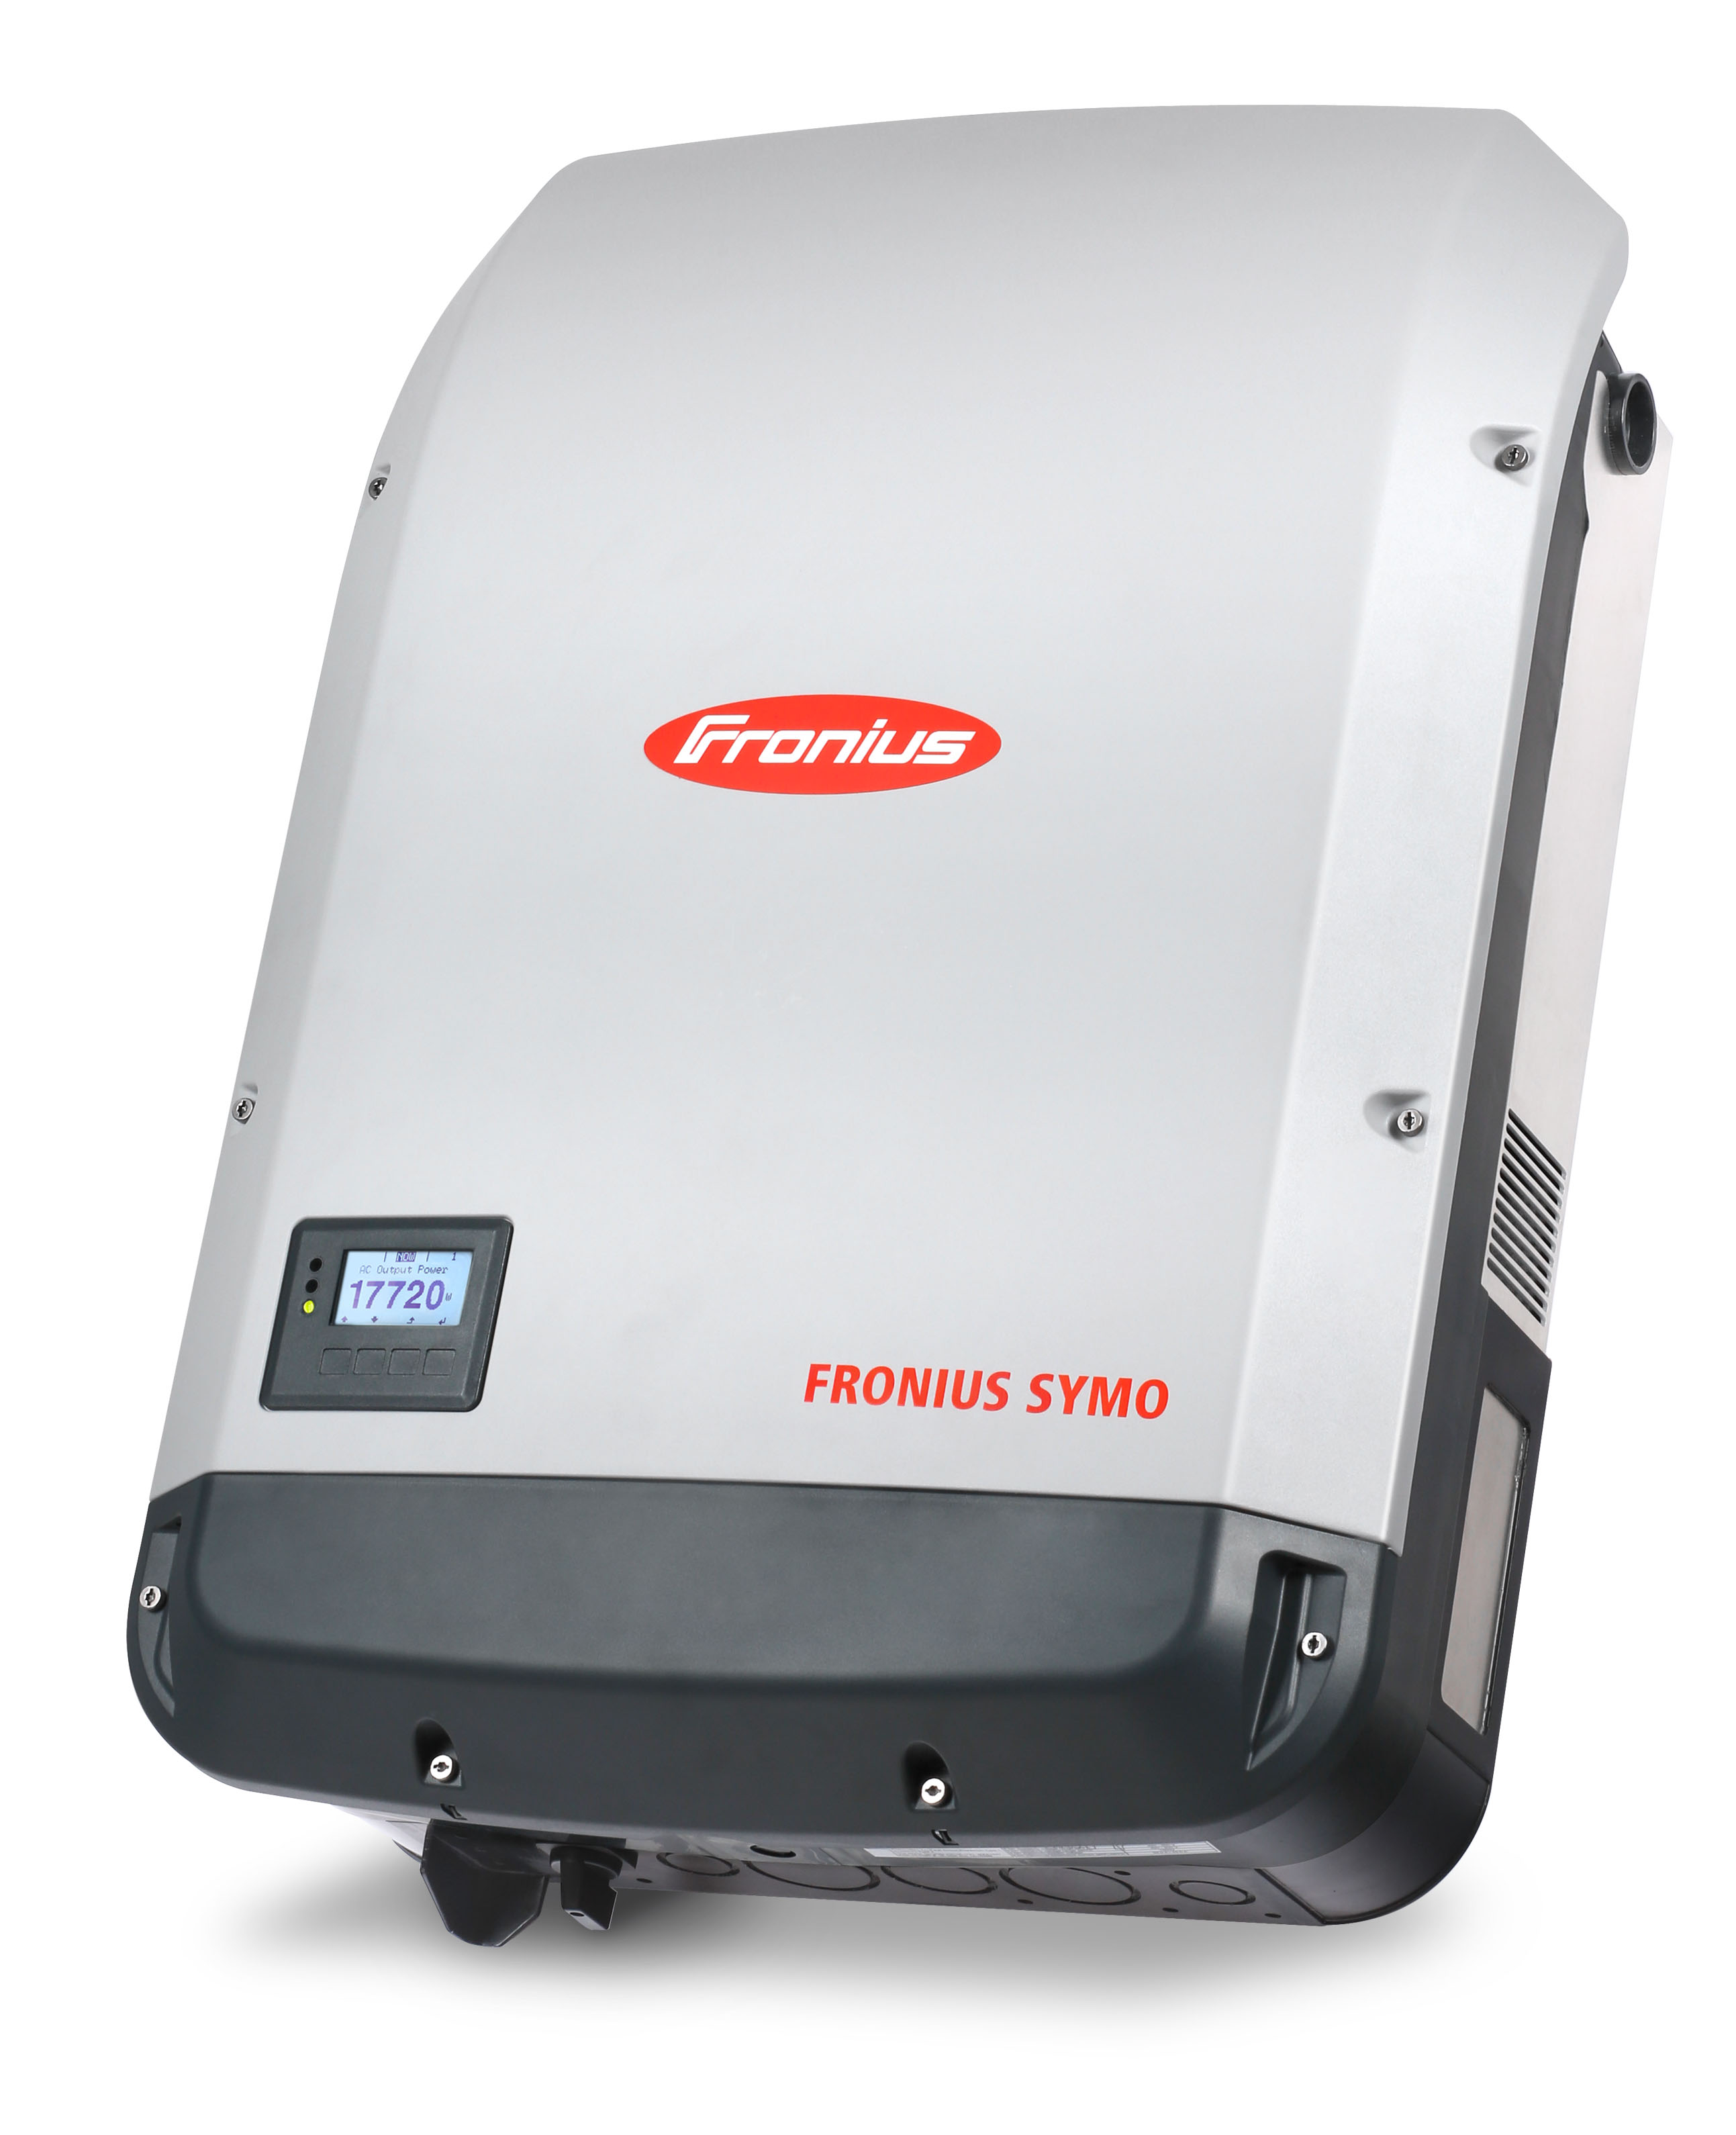 FRONIUS, SYMO 15.0-3 480, NON-ISOLATED STRING INVERTER, 15 KW, 480 VAC, LITE - NO DATAMANAGER 2.0 CARD